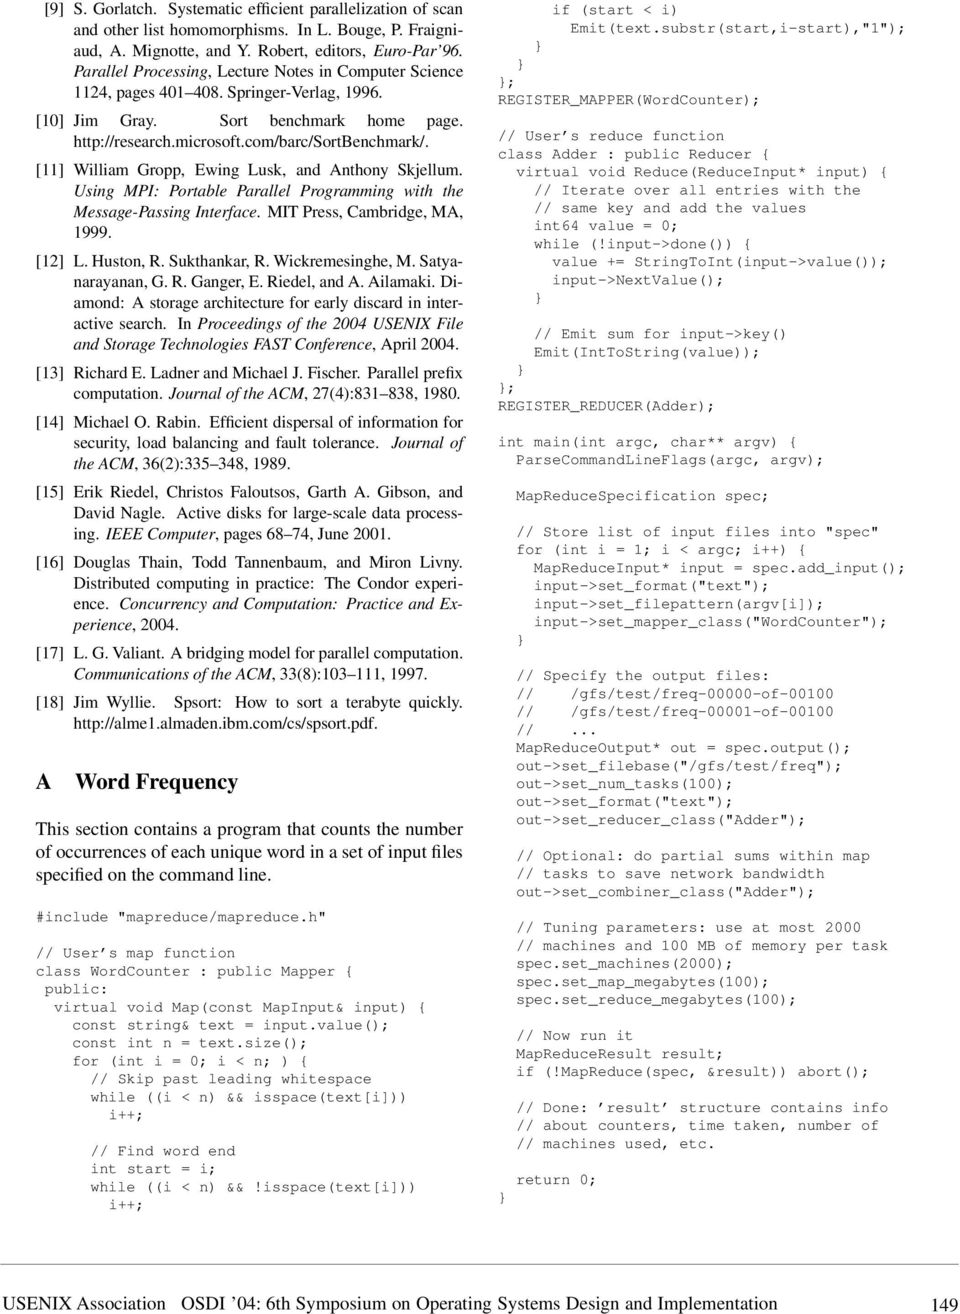 [11] William Gropp, Ewing Lusk, and Anthony Skjellum. Using MPI: Portable Parallel Programming with the Message-Passing Interface. MIT Press, Cambridge, MA, 1999. [12] L. Huston, R. Sukthankar, R.